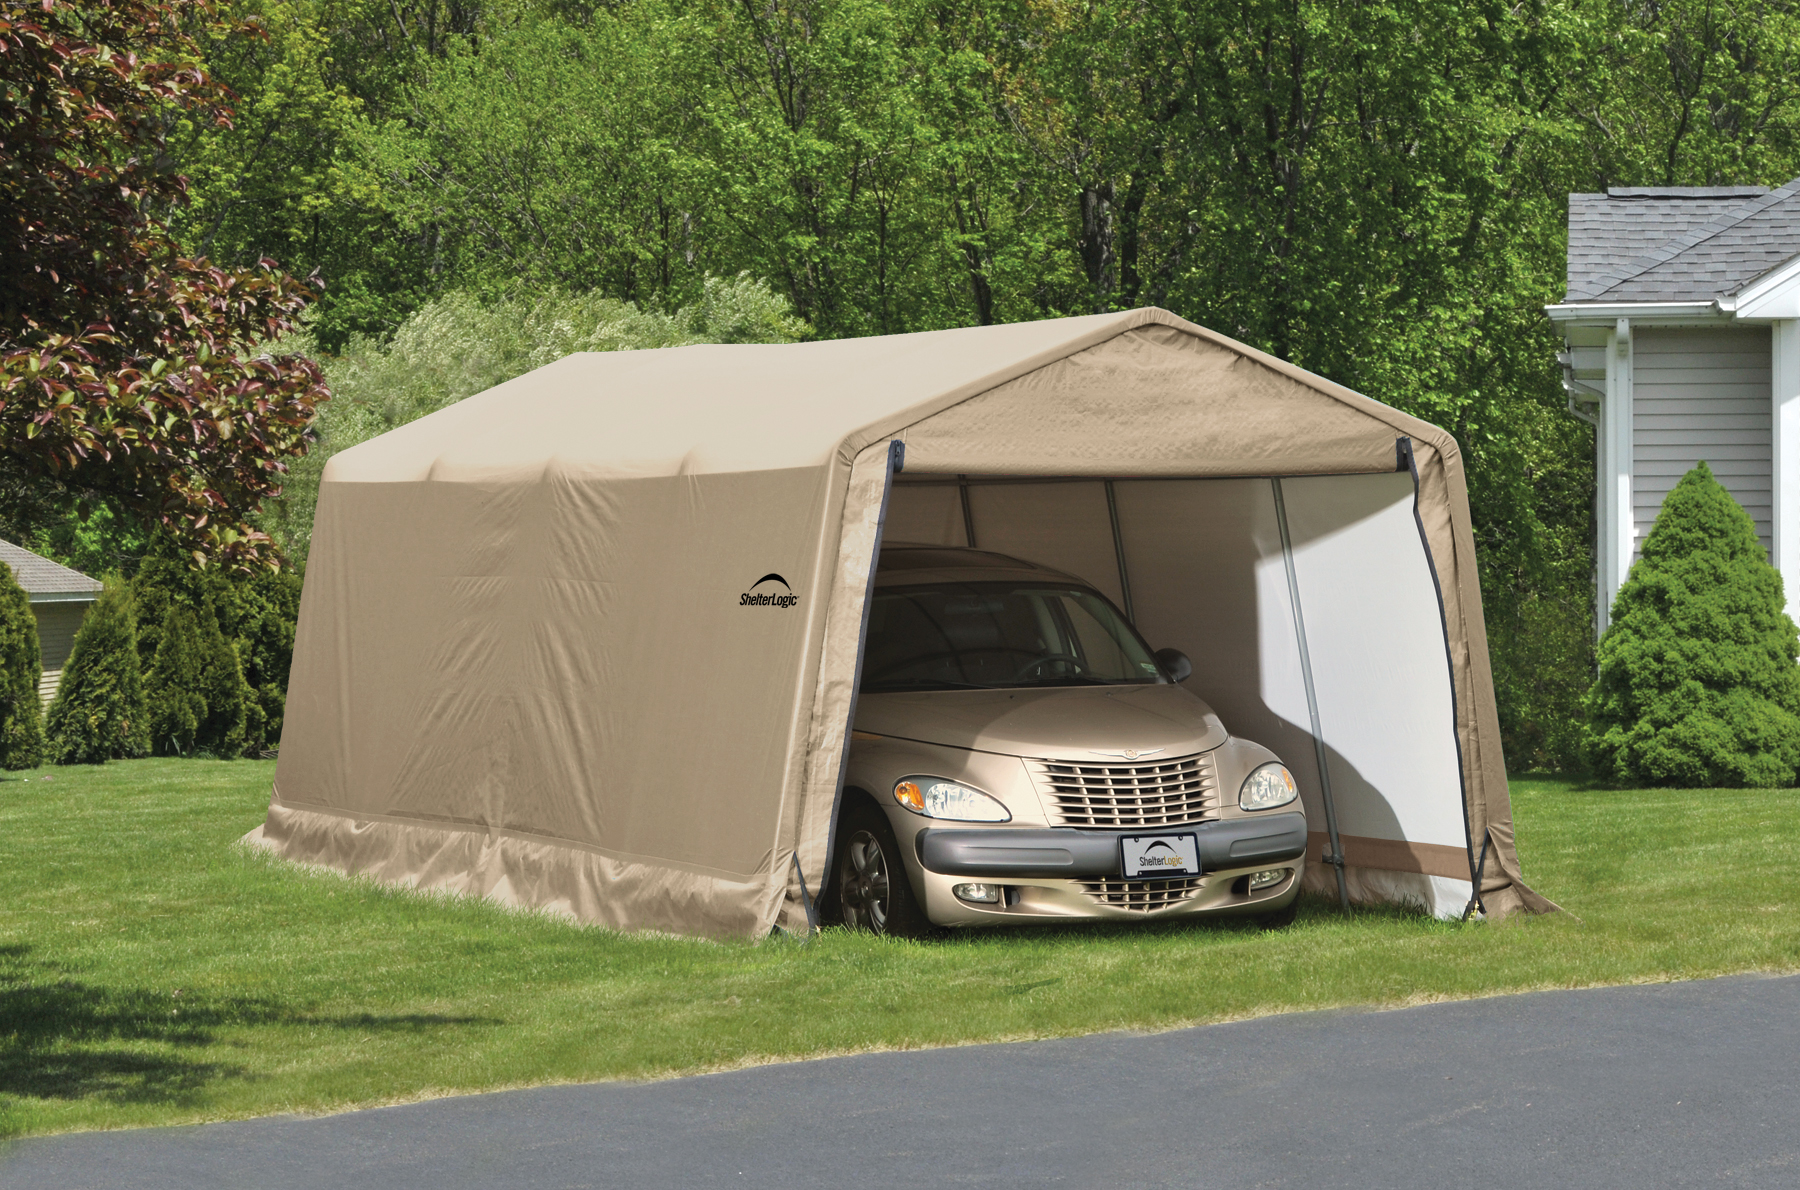 Small Car Shelter : Shelterlogic portable car garage shelters